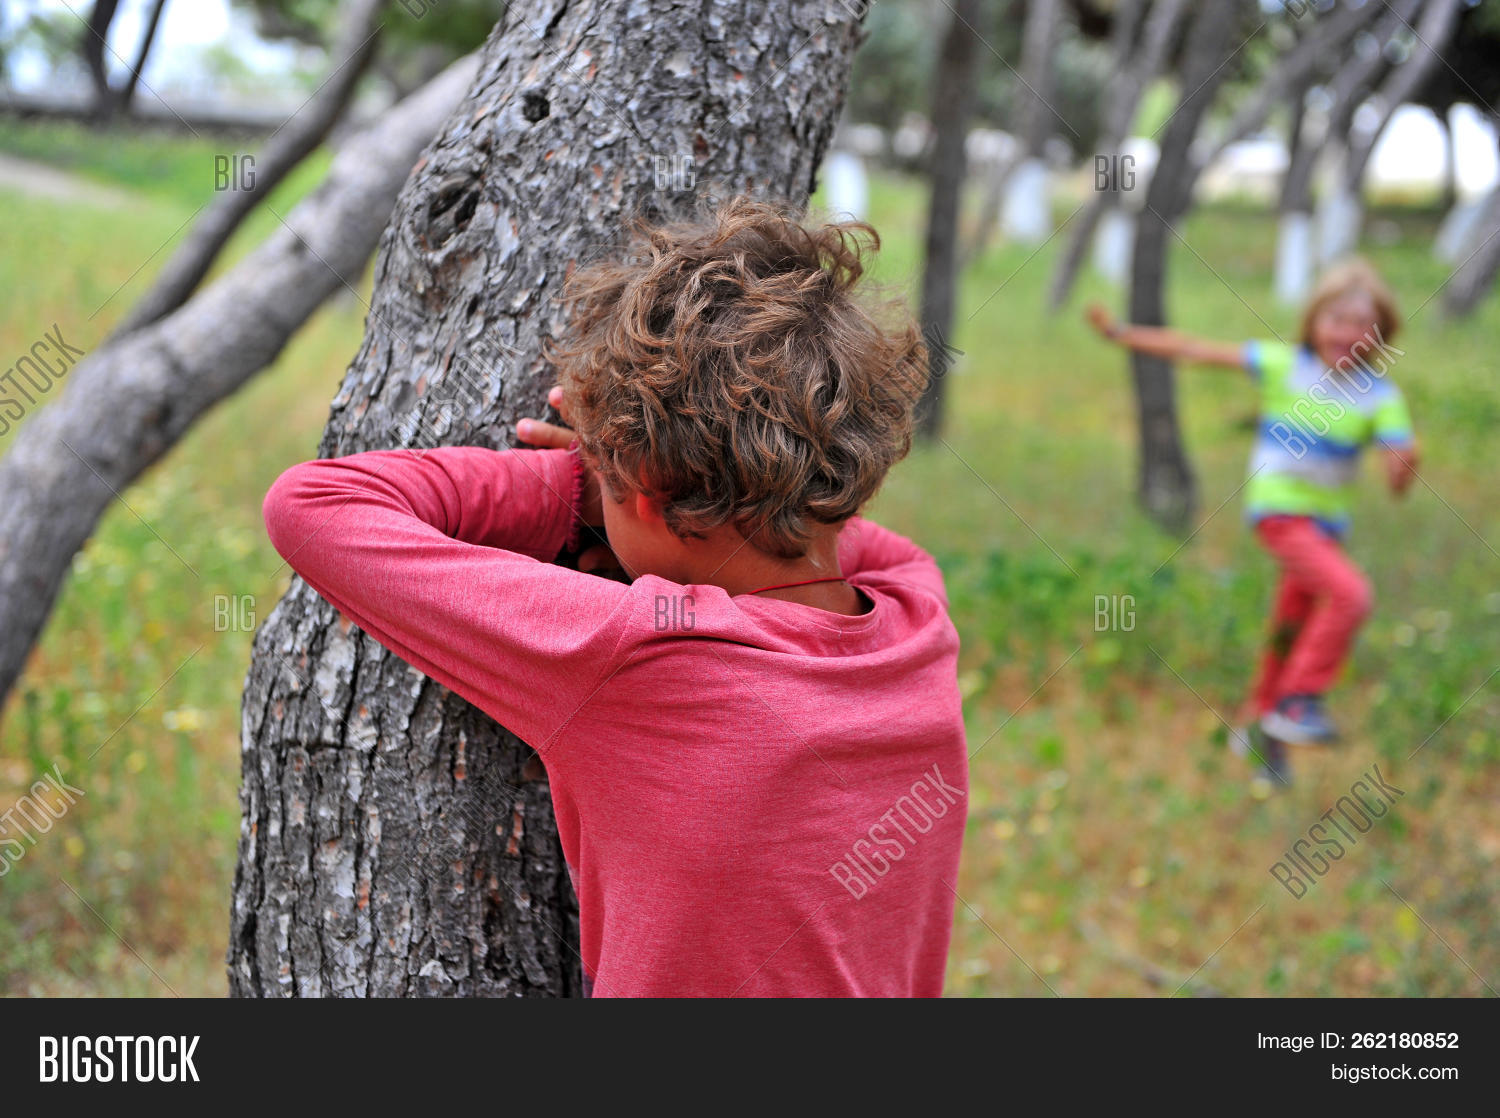 Hide And Seek Kids Two Kids Playing Hide Image Photo Free Trial Bigstock